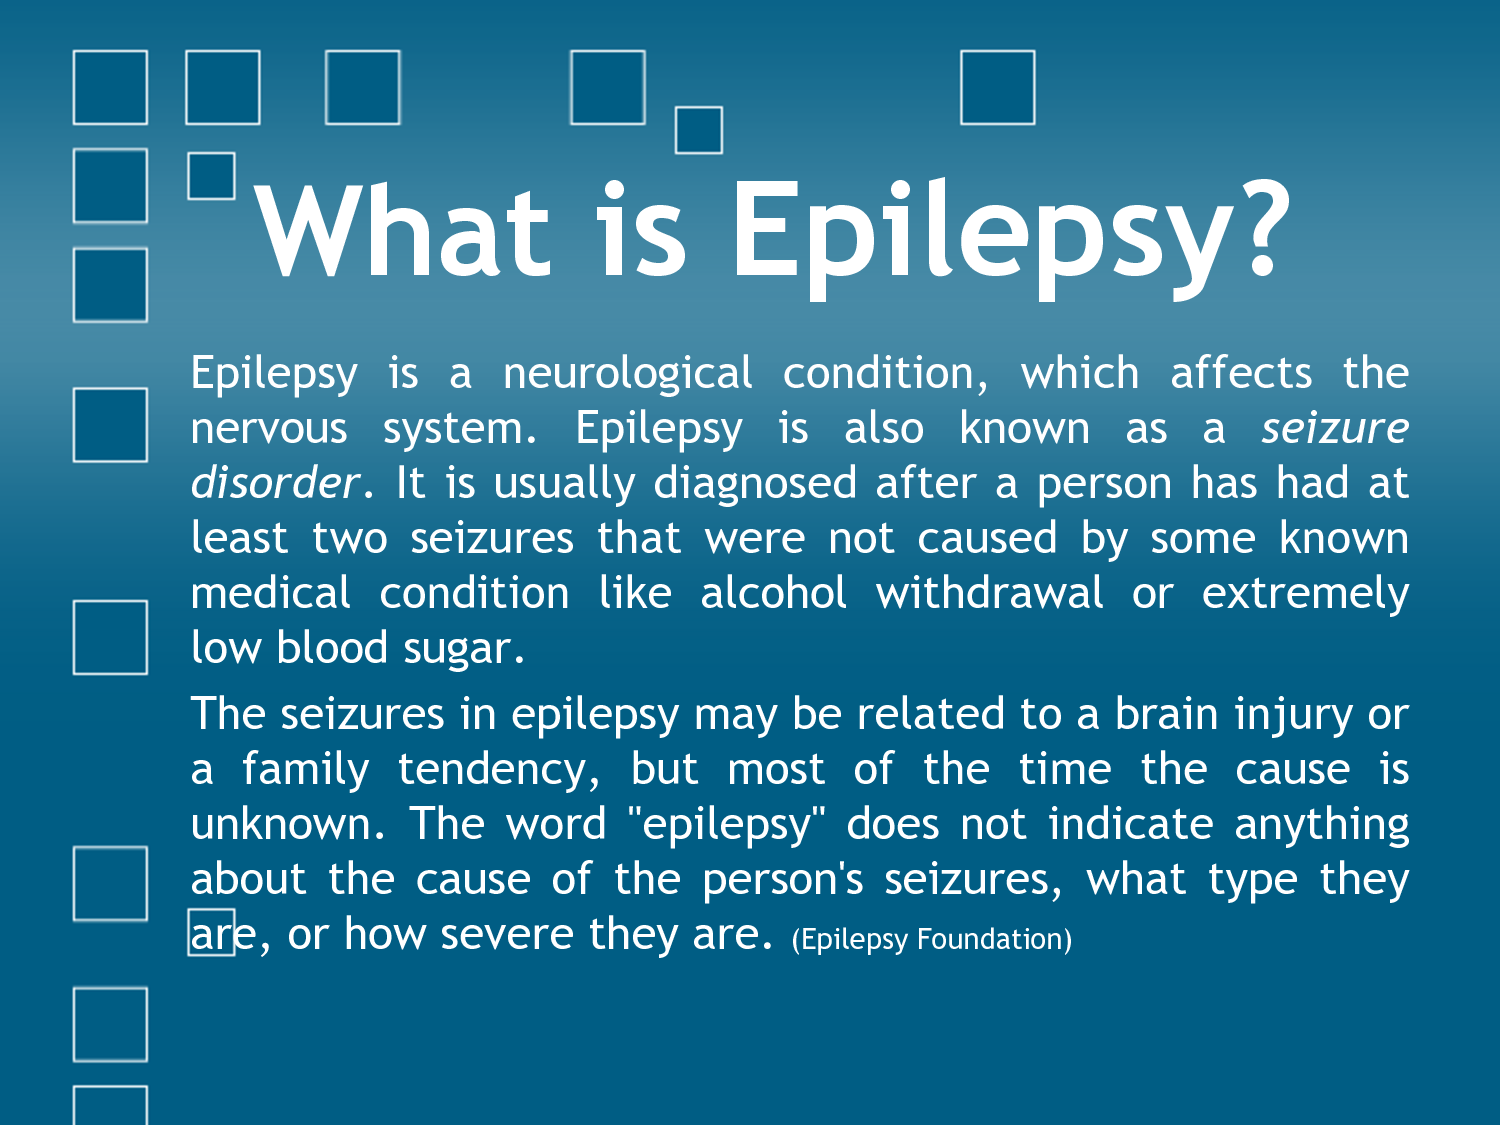 epilepsy a disorder in which nerve cells of the brain from time to time release abnormal electrical  At least one person in every two hundred has epilepsy a chronic disorder in which nerve cells of the brain from time to time release electrical impulses.